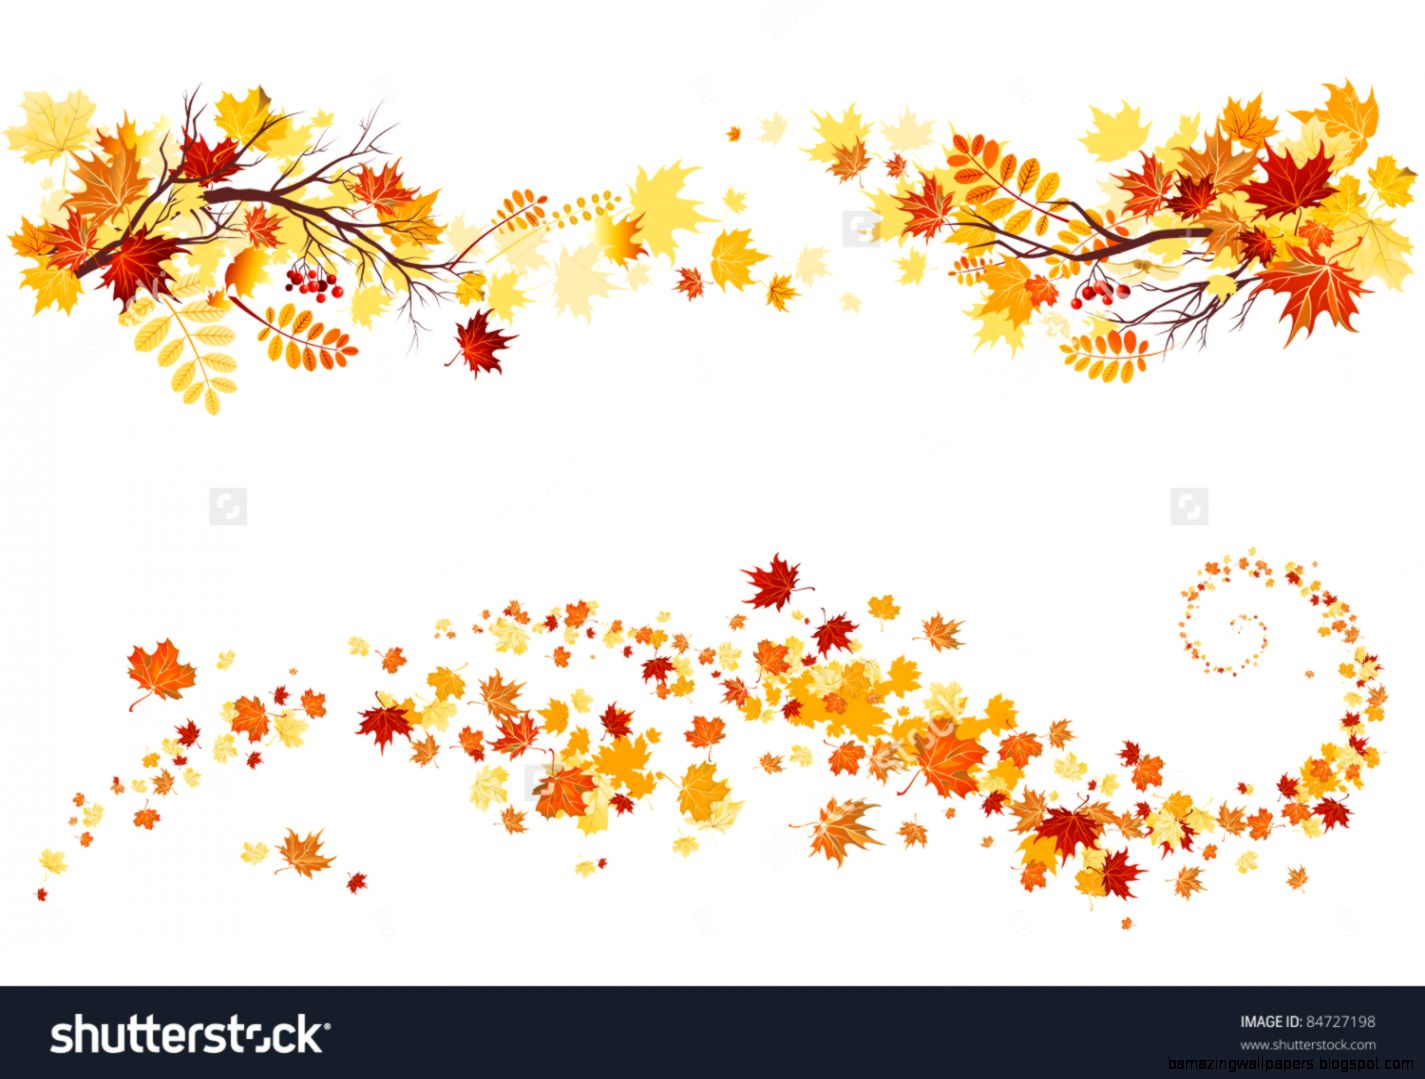 Autumn Leaves Border Stock Vector Illustration 84727198  Shutterstock